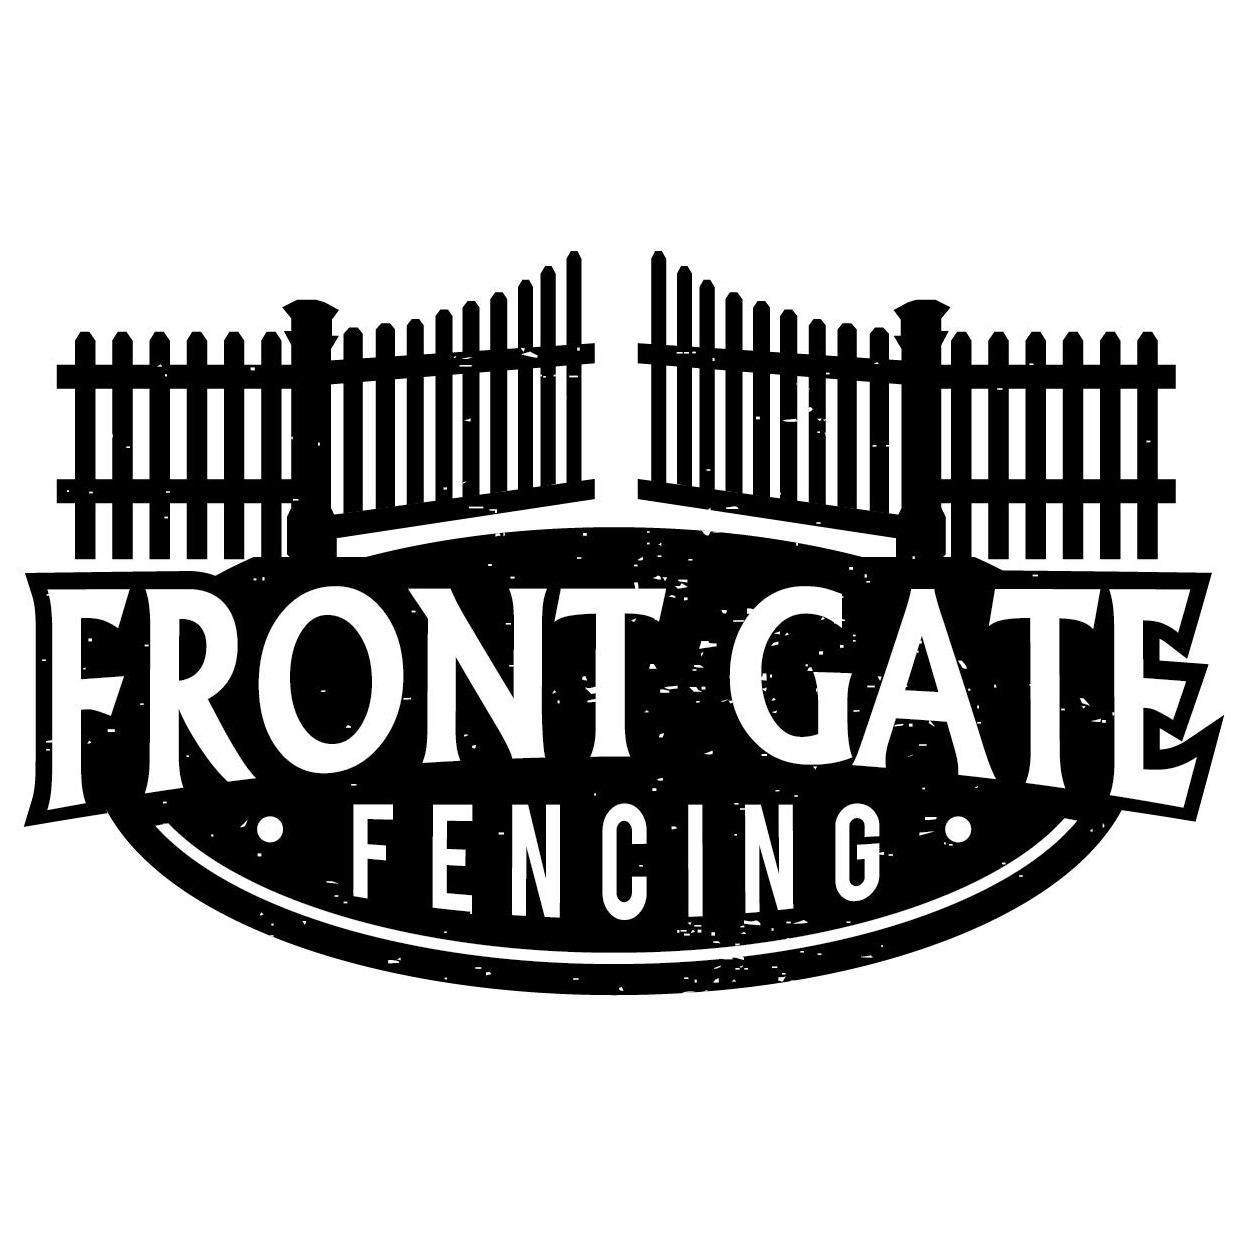 Front Gate Fencing - Nipomo, CA 93444 - (805)363-8635 | ShowMeLocal.com